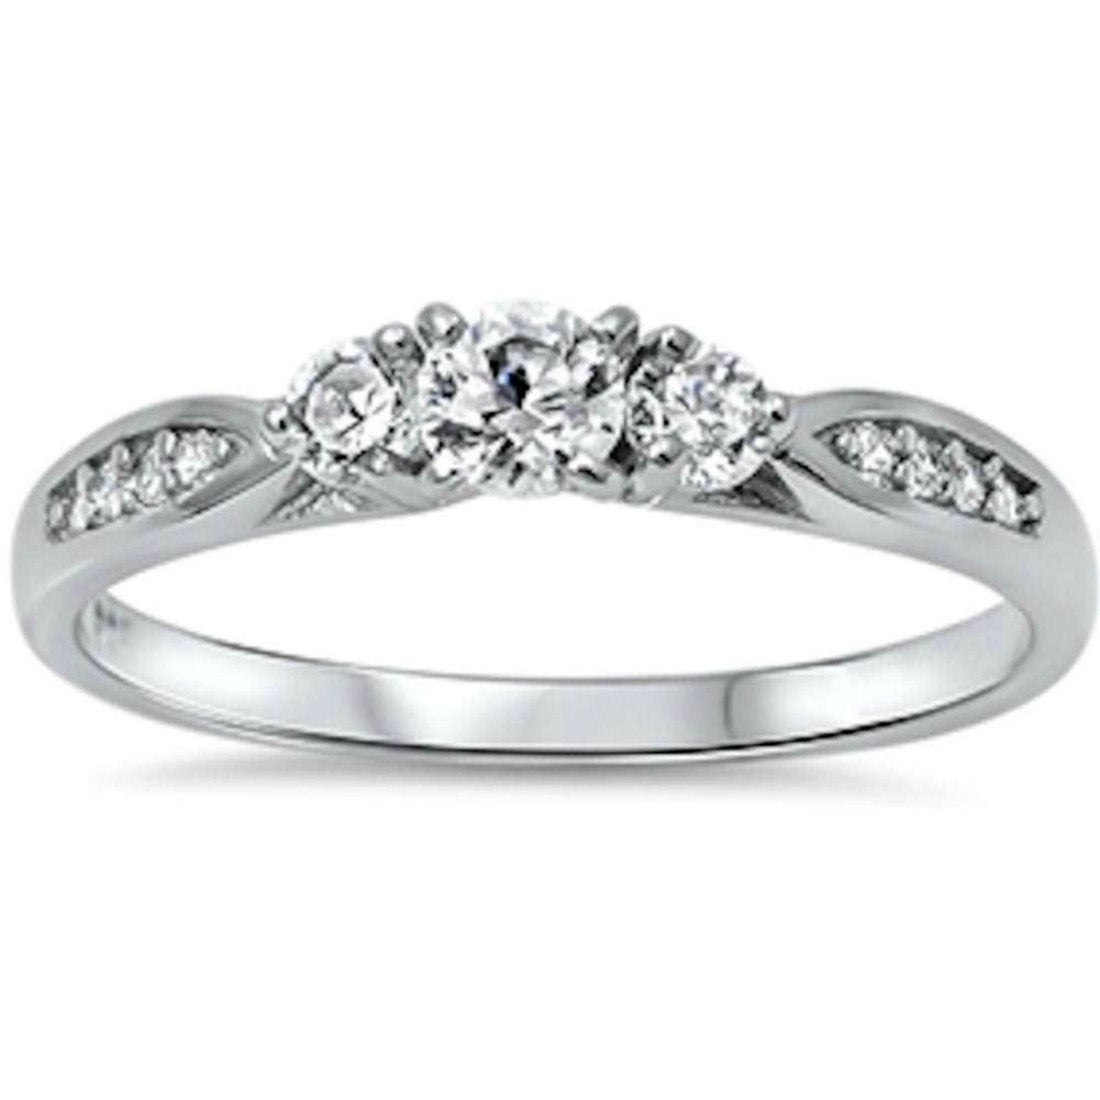 3-Stone Engagement Promise Ring Simulated CZ 925 Sterling Silver (4mm)